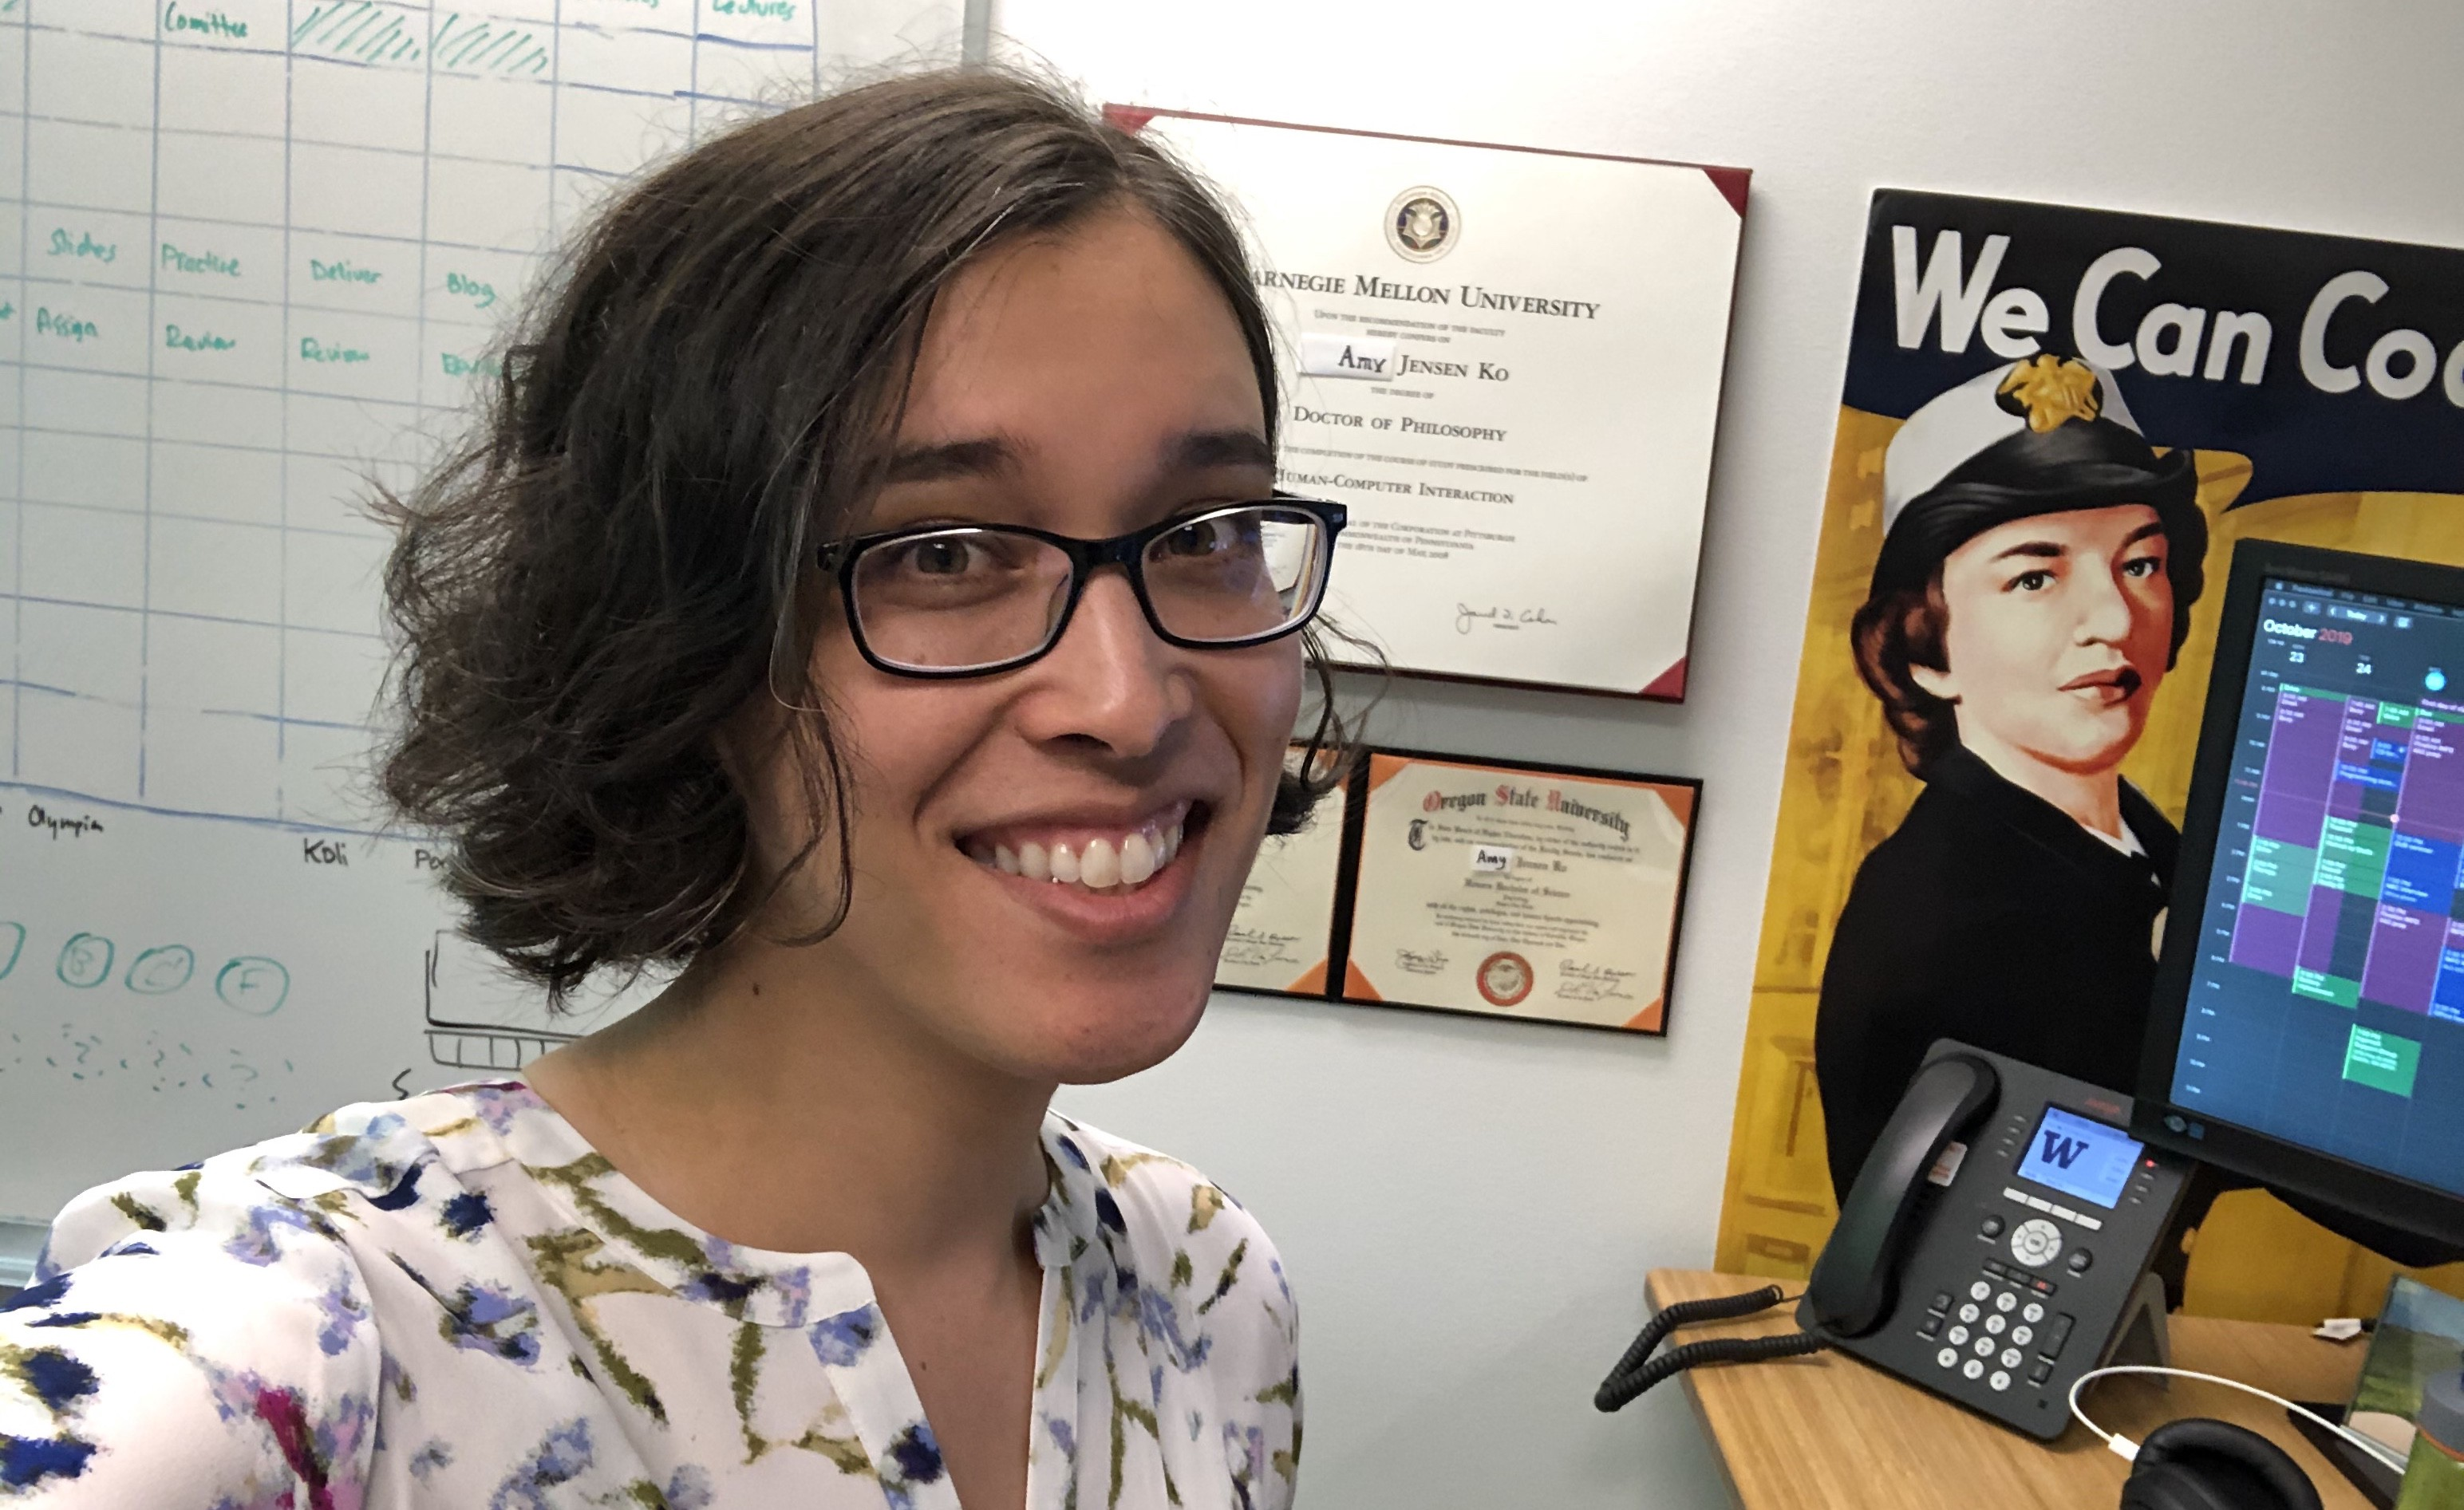 Amy smiling in front of her desk.